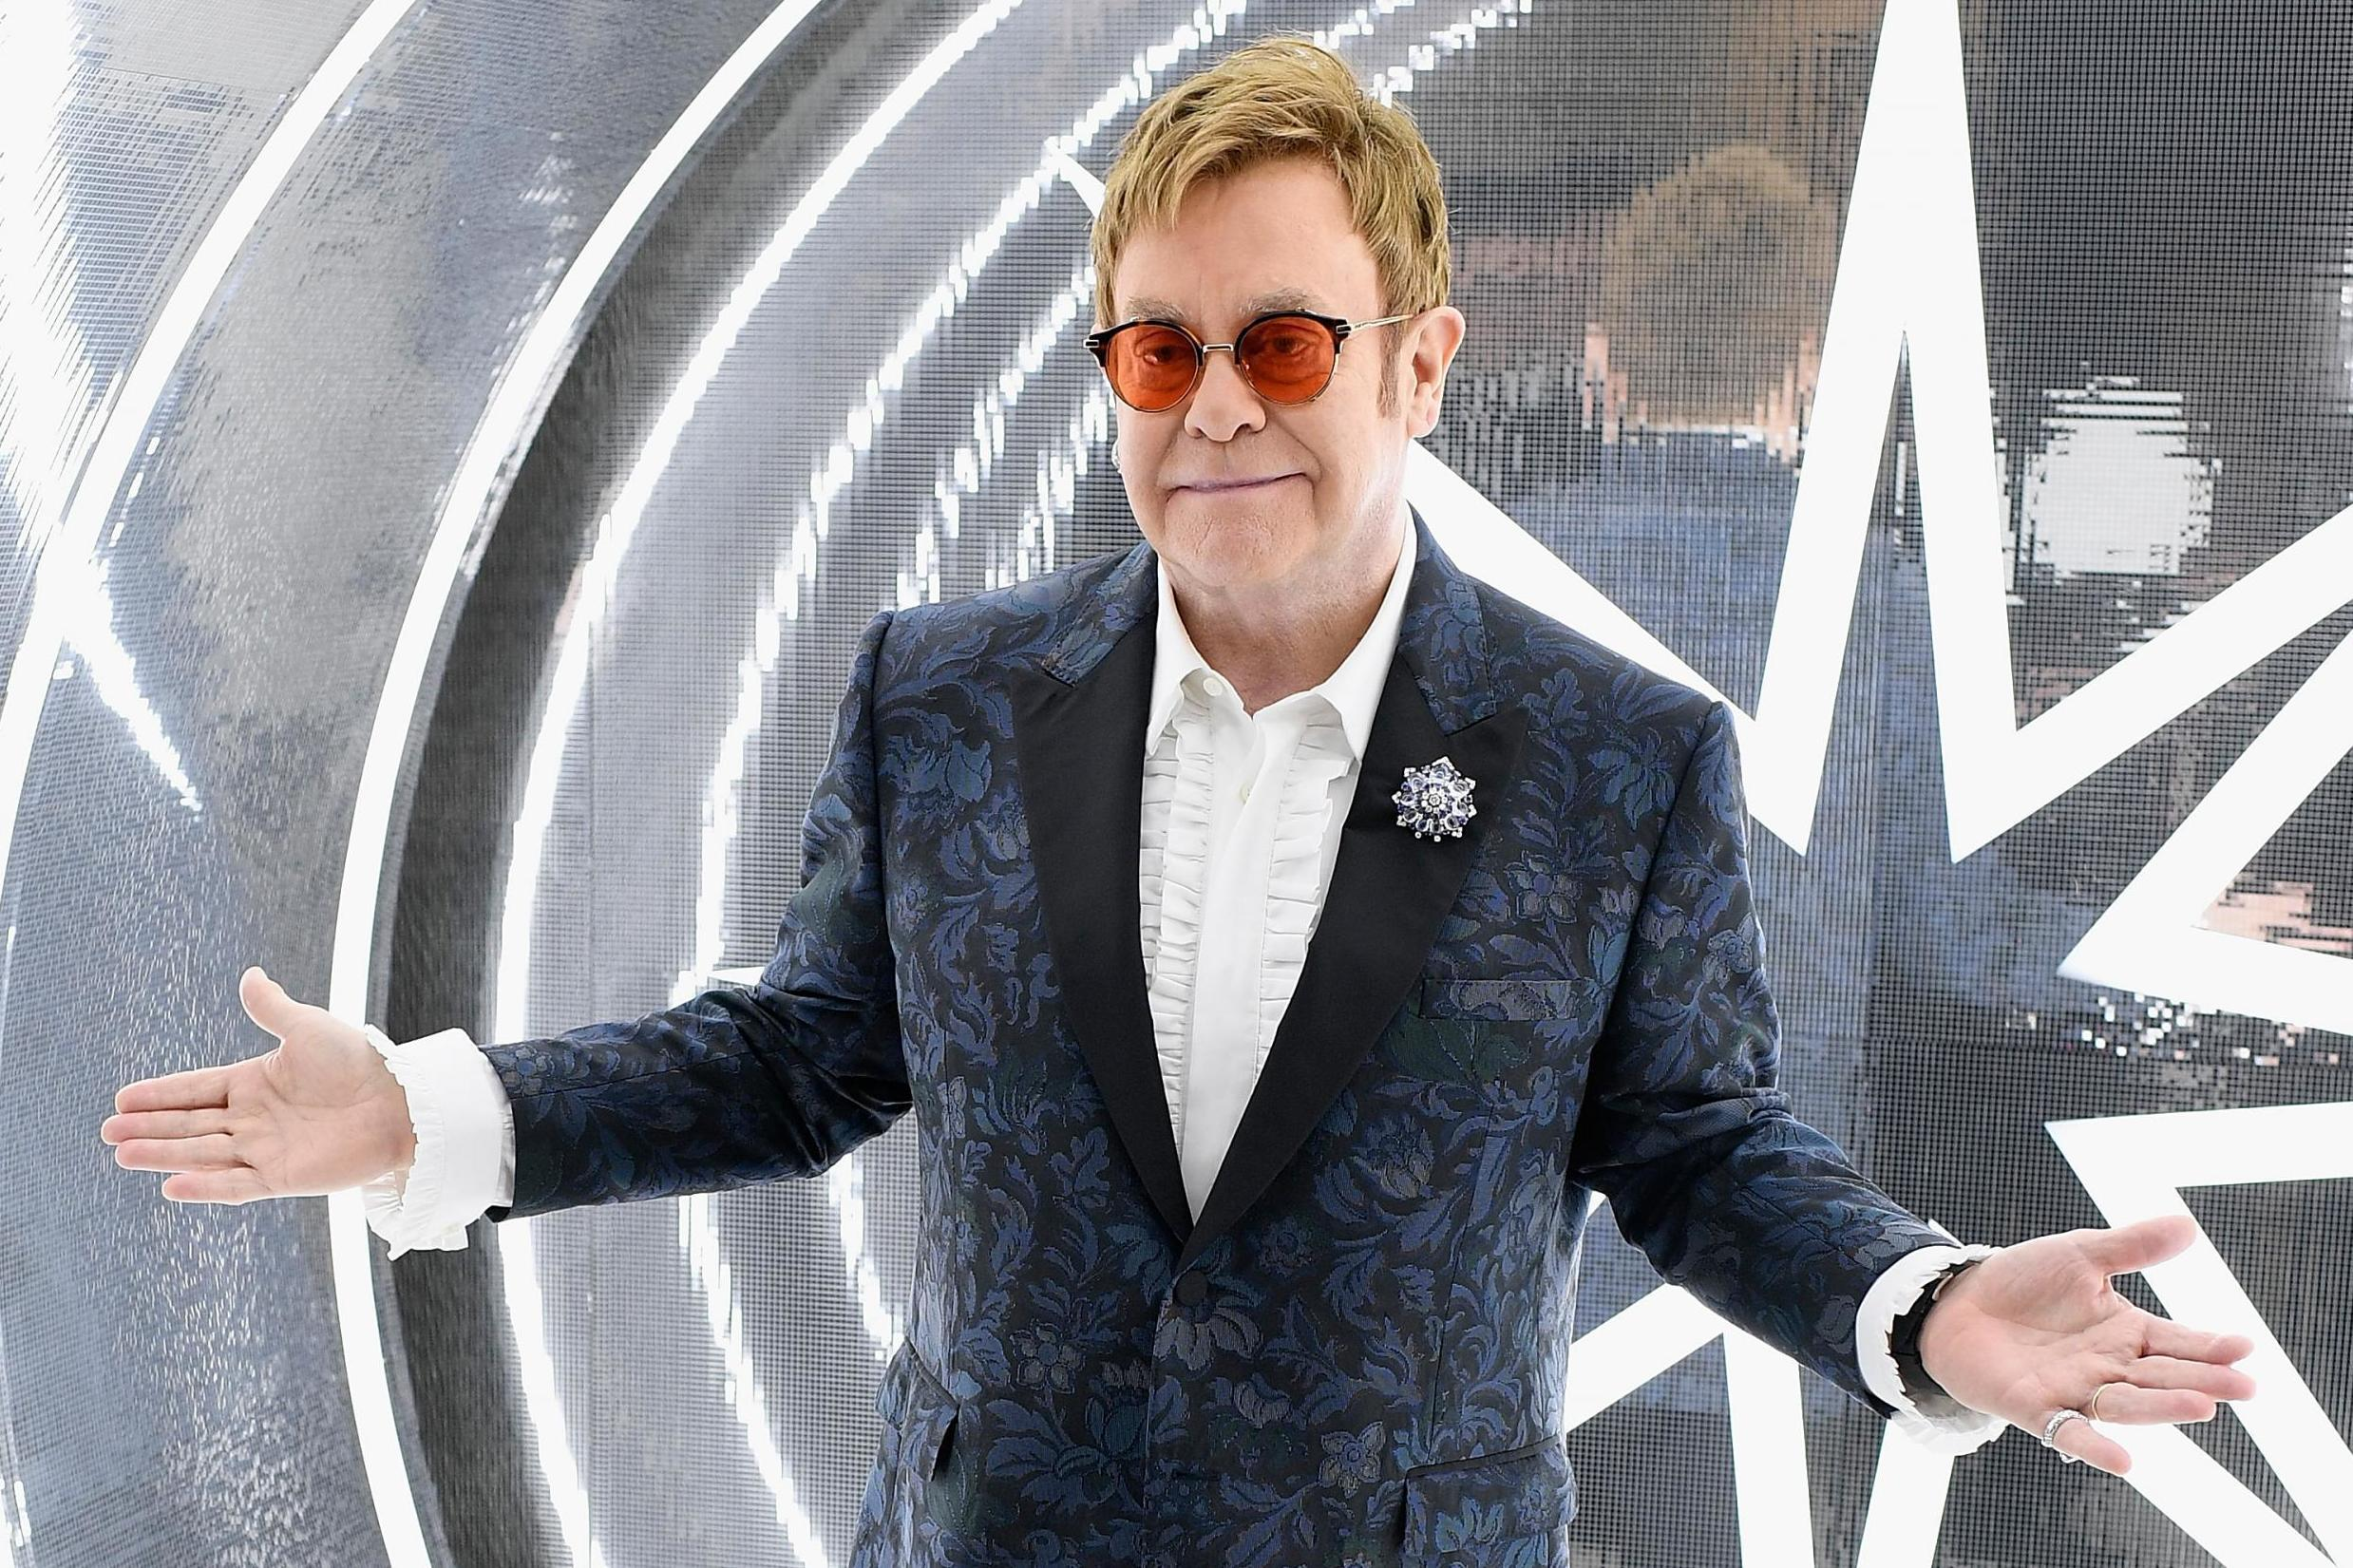 Elton John's unlikely recurring role in Trump's presidency